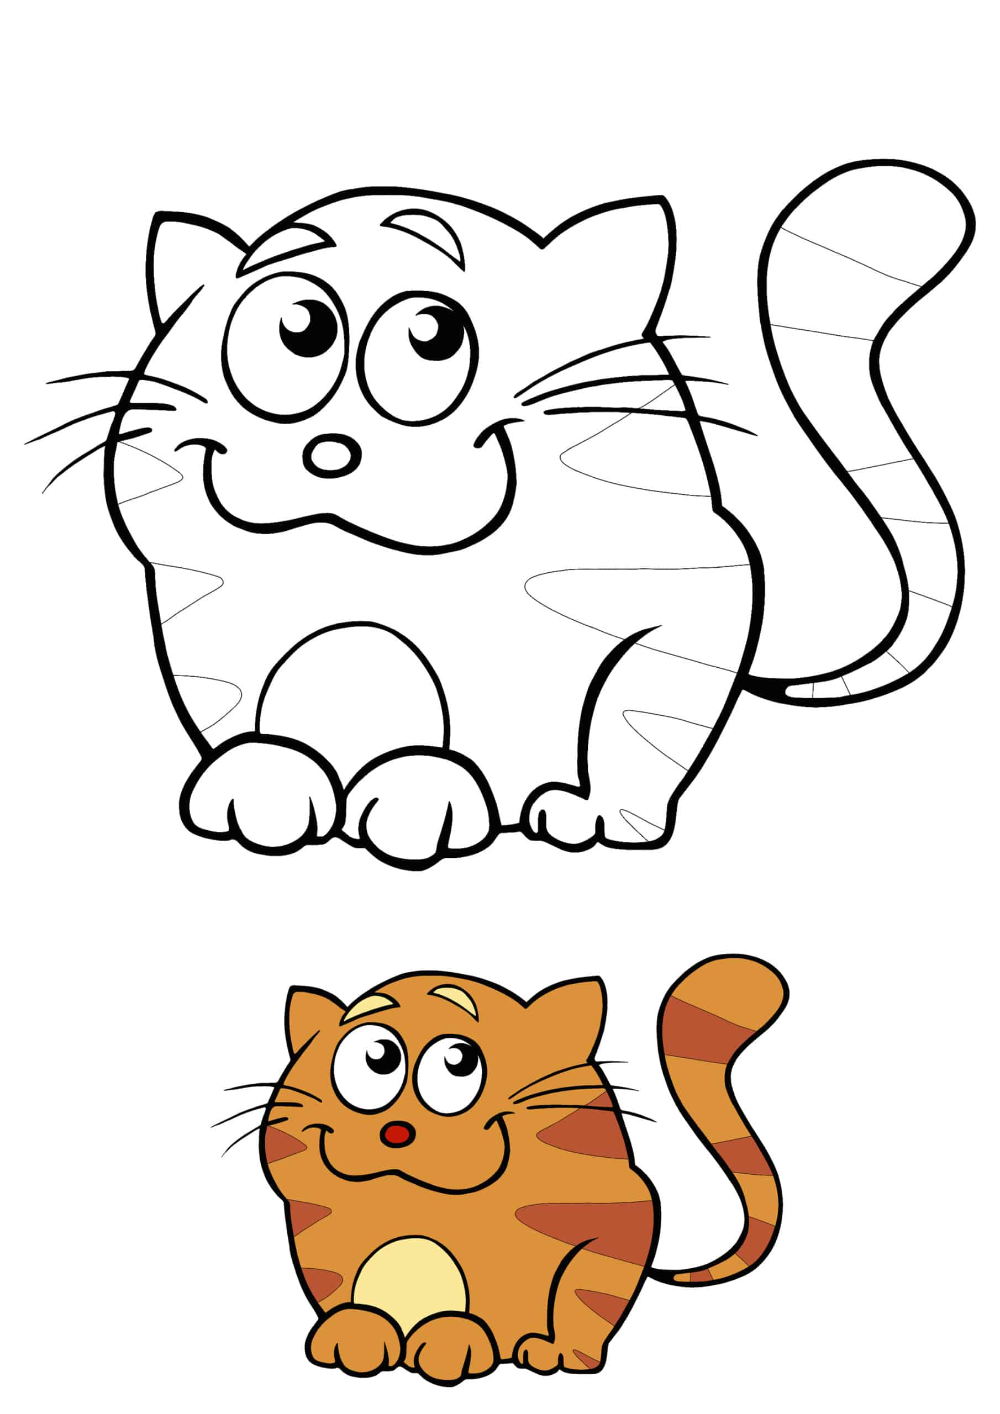 Cartoon Cat Coloring Pages 2 Free Coloring Sheets 2020 Cat Coloring Page Cartoon Cat Coloring Pages